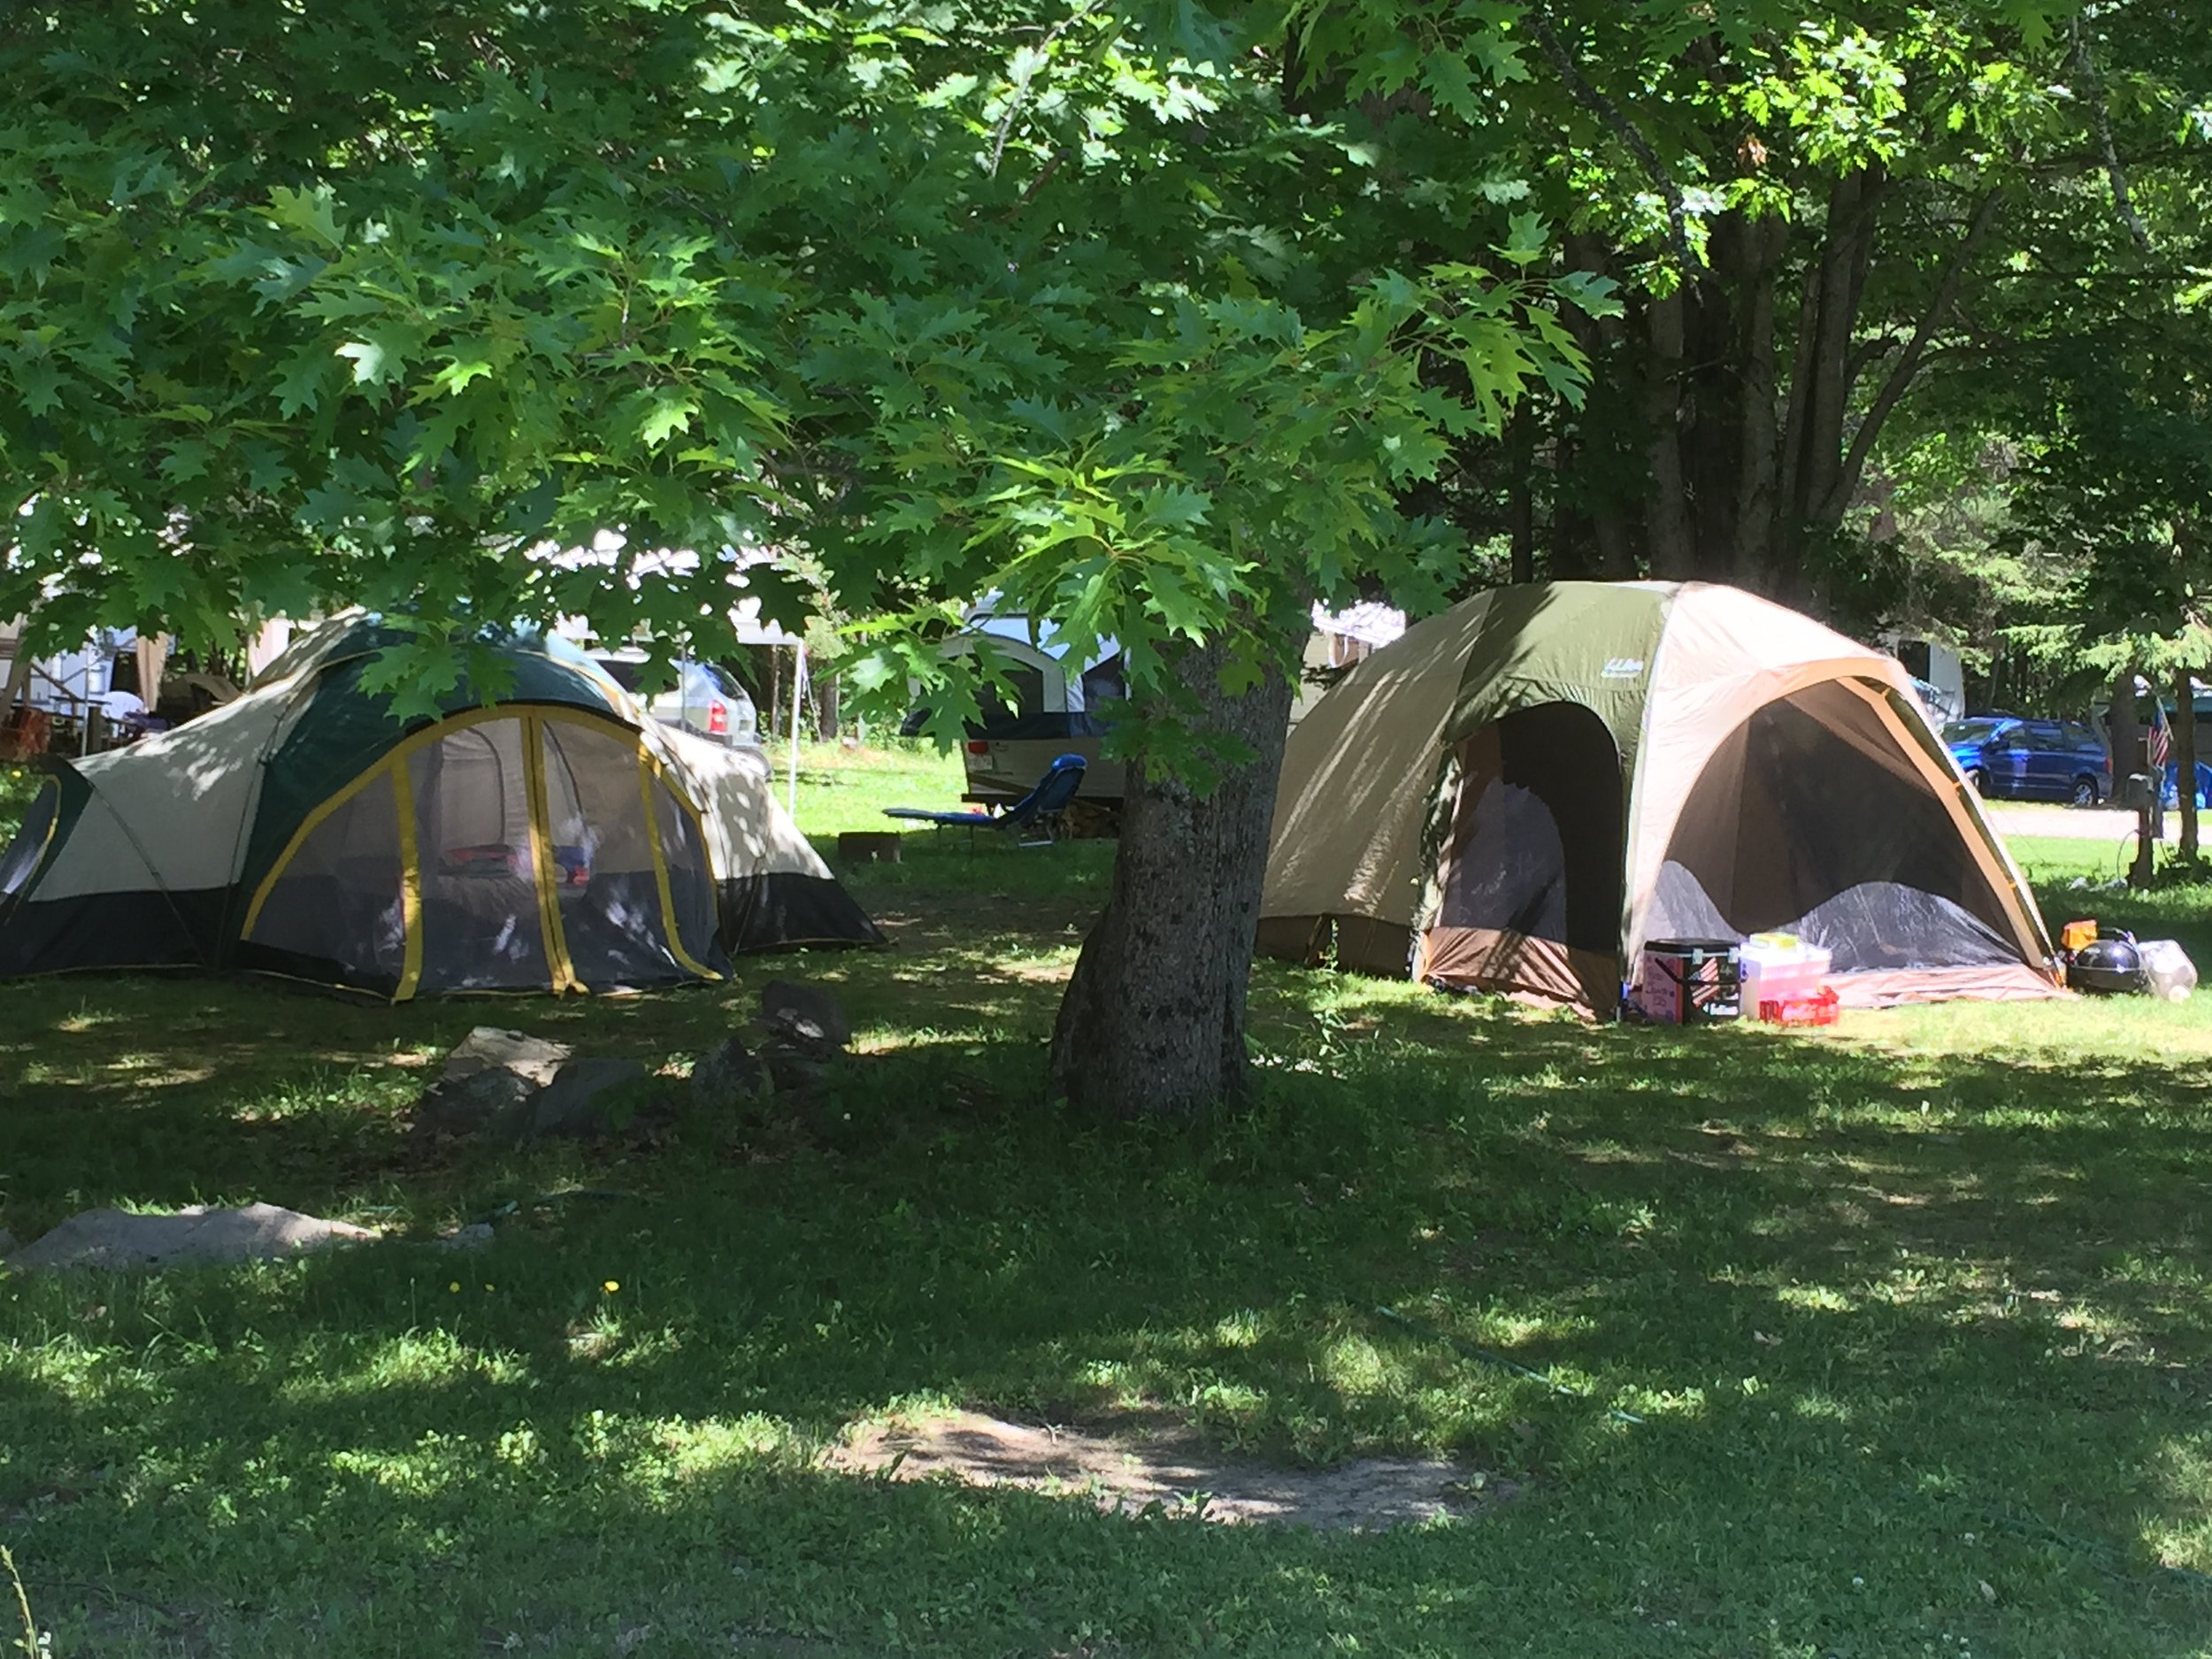 Amenity Rich! - Full hookup sites, tent sites, & cabins. We have a large pool, free Wi-Fi & Satellite TV at sites, a game room, on-site Propane filling station, laundry room, playground, entertainment, big top tent for events and much more!